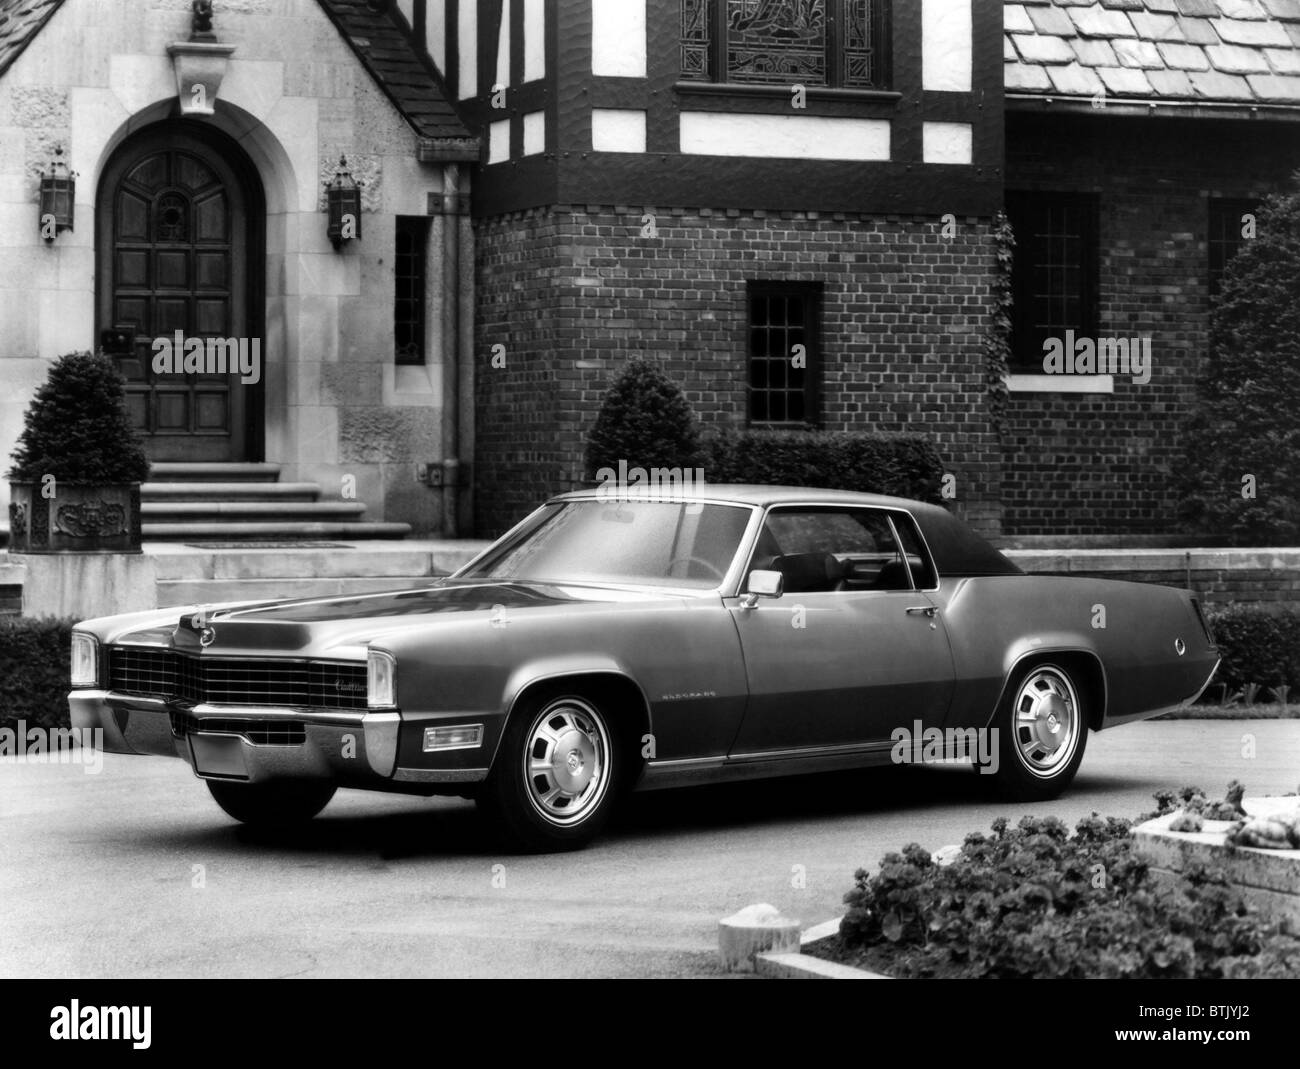 472 Cadillac Engine Diagram Stock Photos Images Alamy 1968 Fleetwood Eldorado With A Cubic Inch That Produces 525 Foot Pounds Of